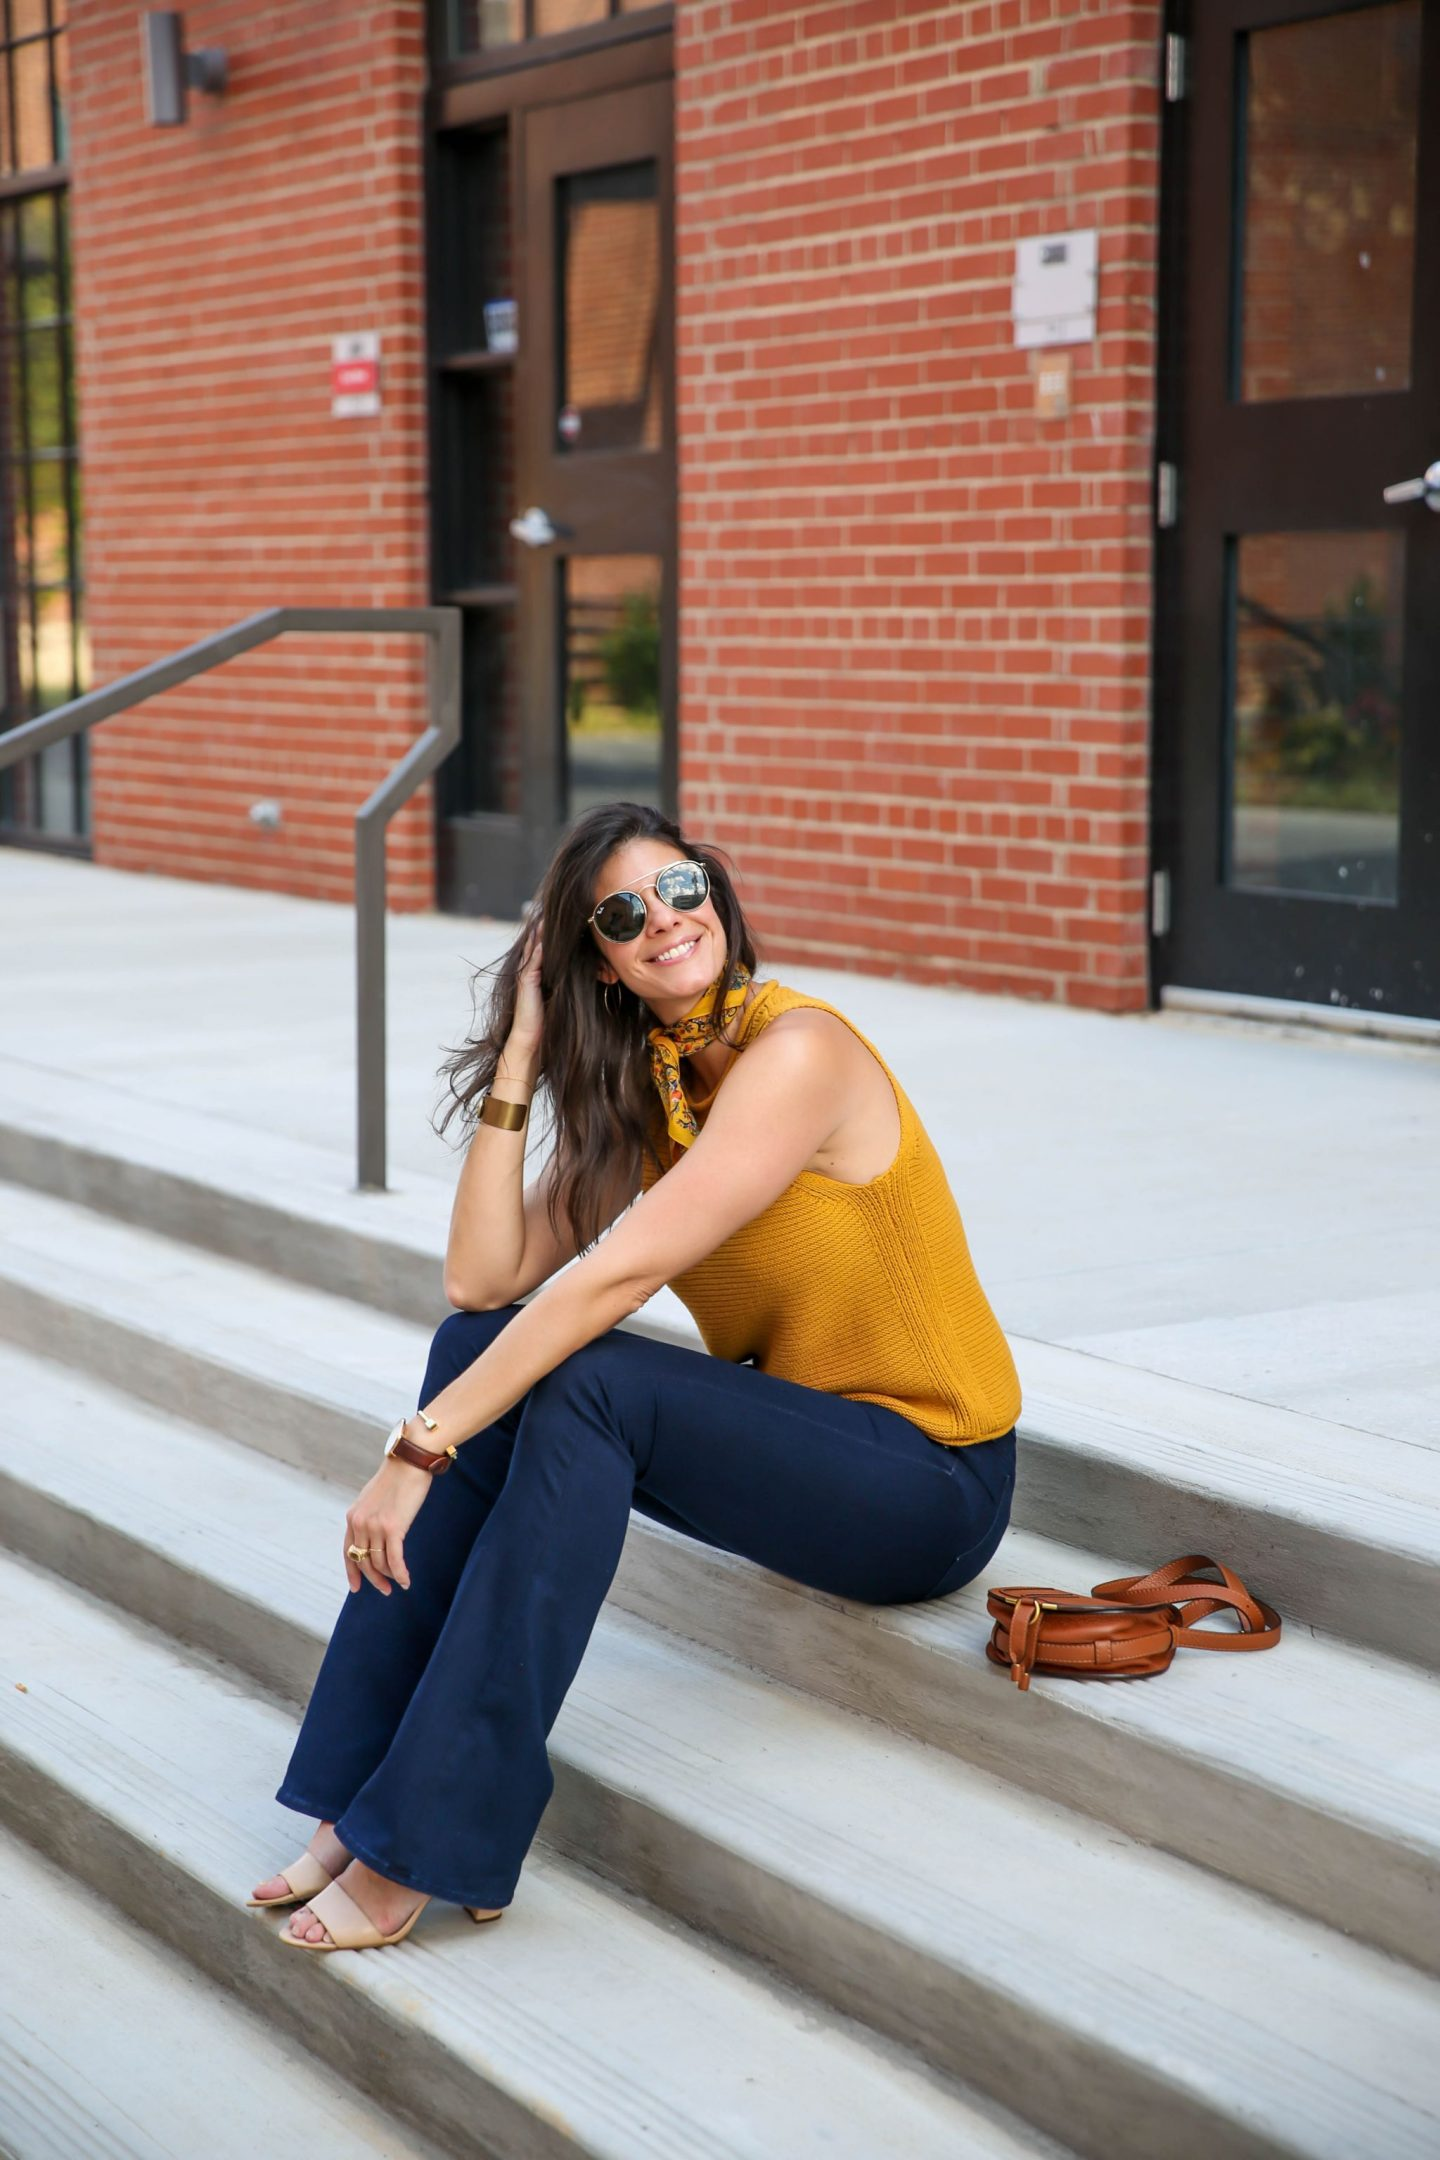 70s style for fall - Lauren schwaiger Charlotte style blog